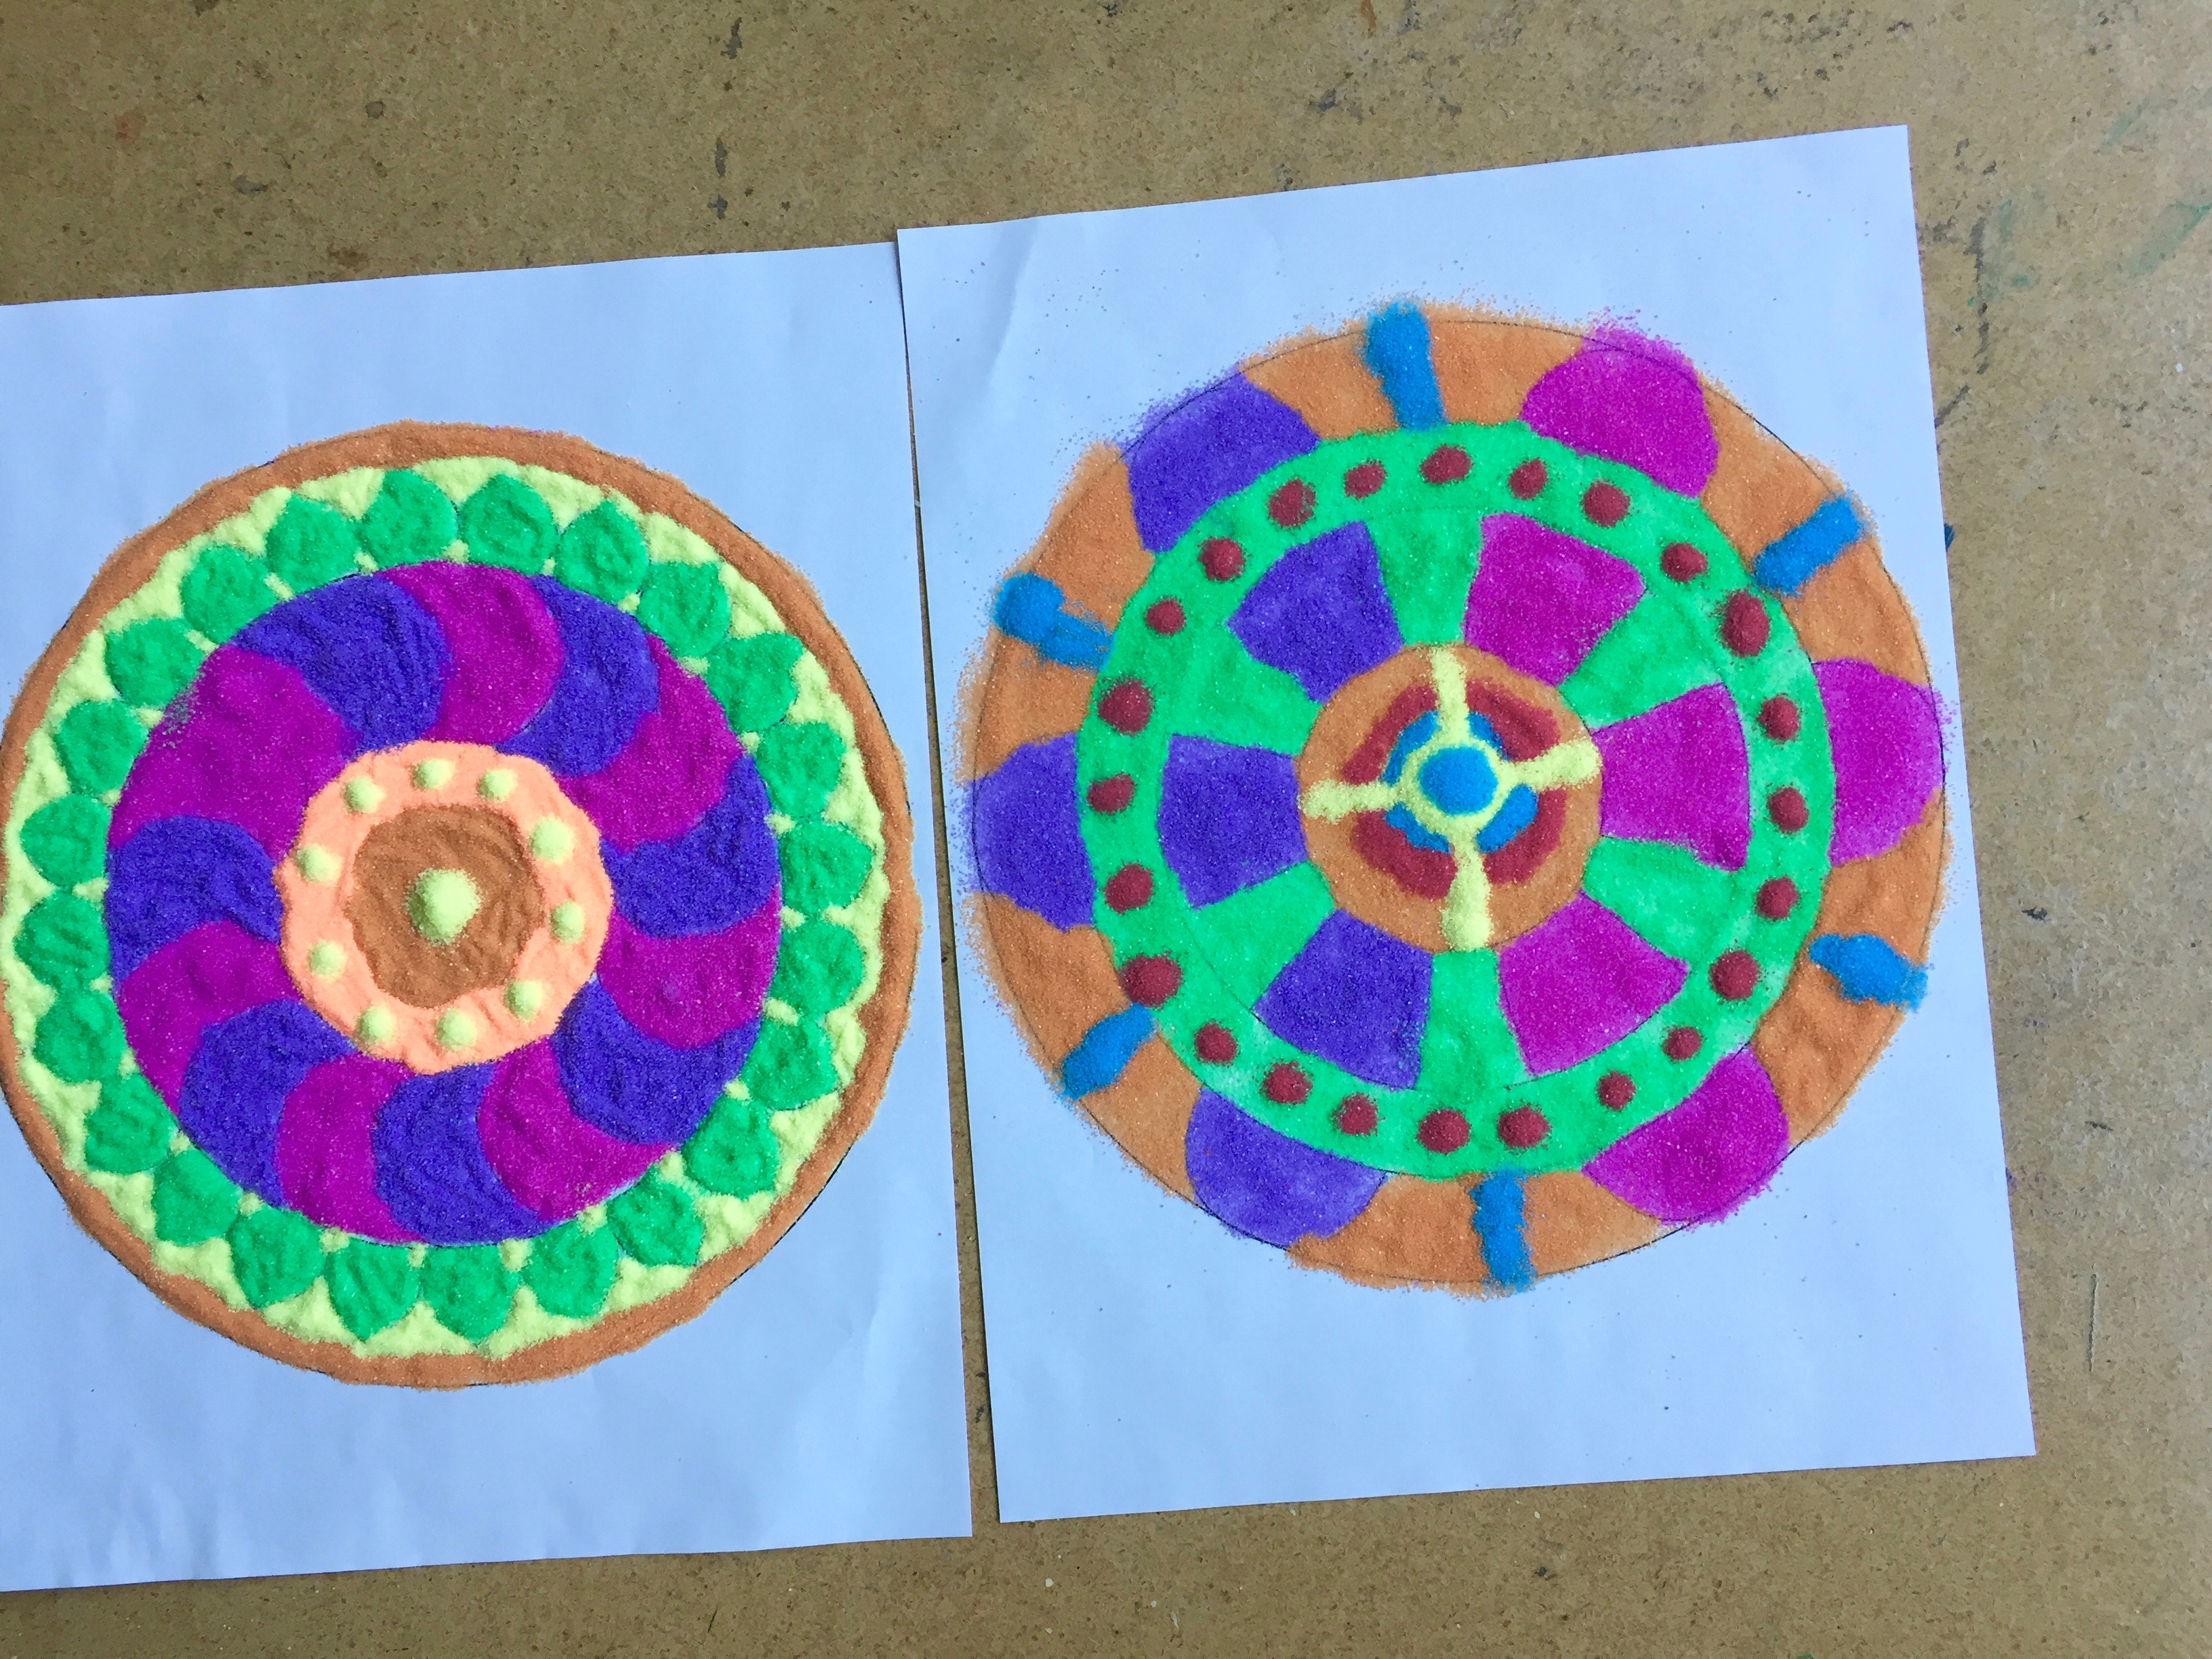 Mandalas by M.K. (left) and D.T. (right)